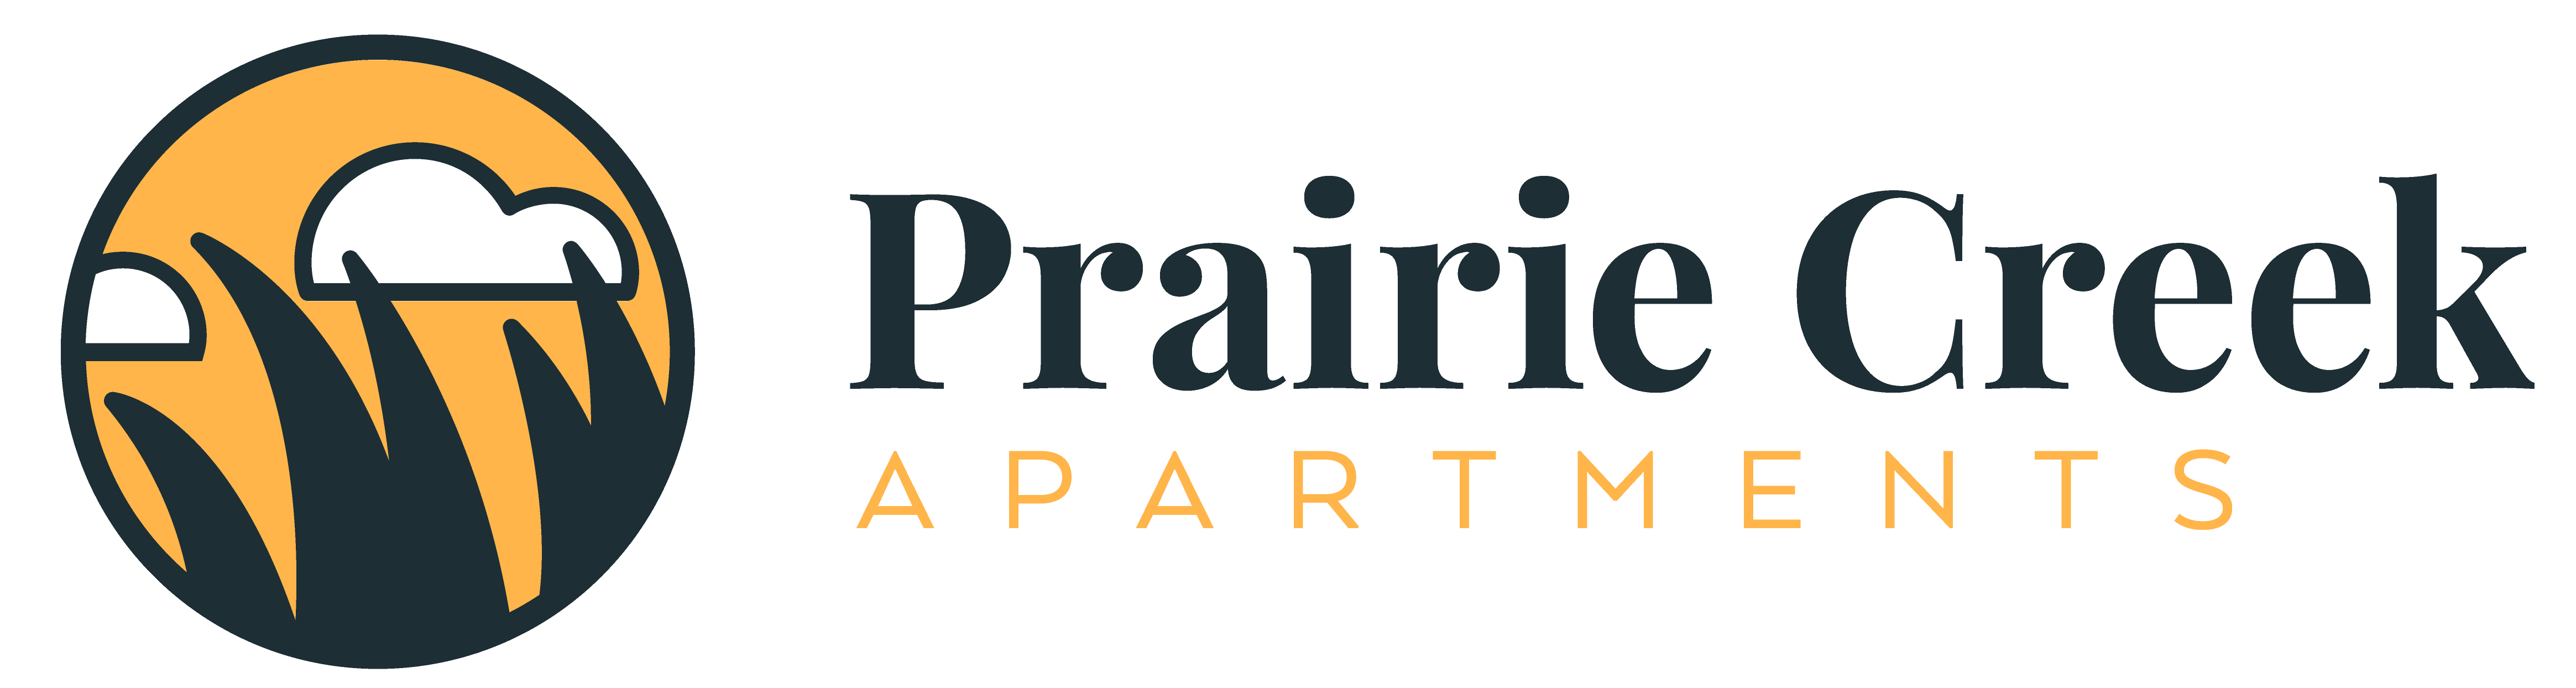 Prairie Creek Apartments